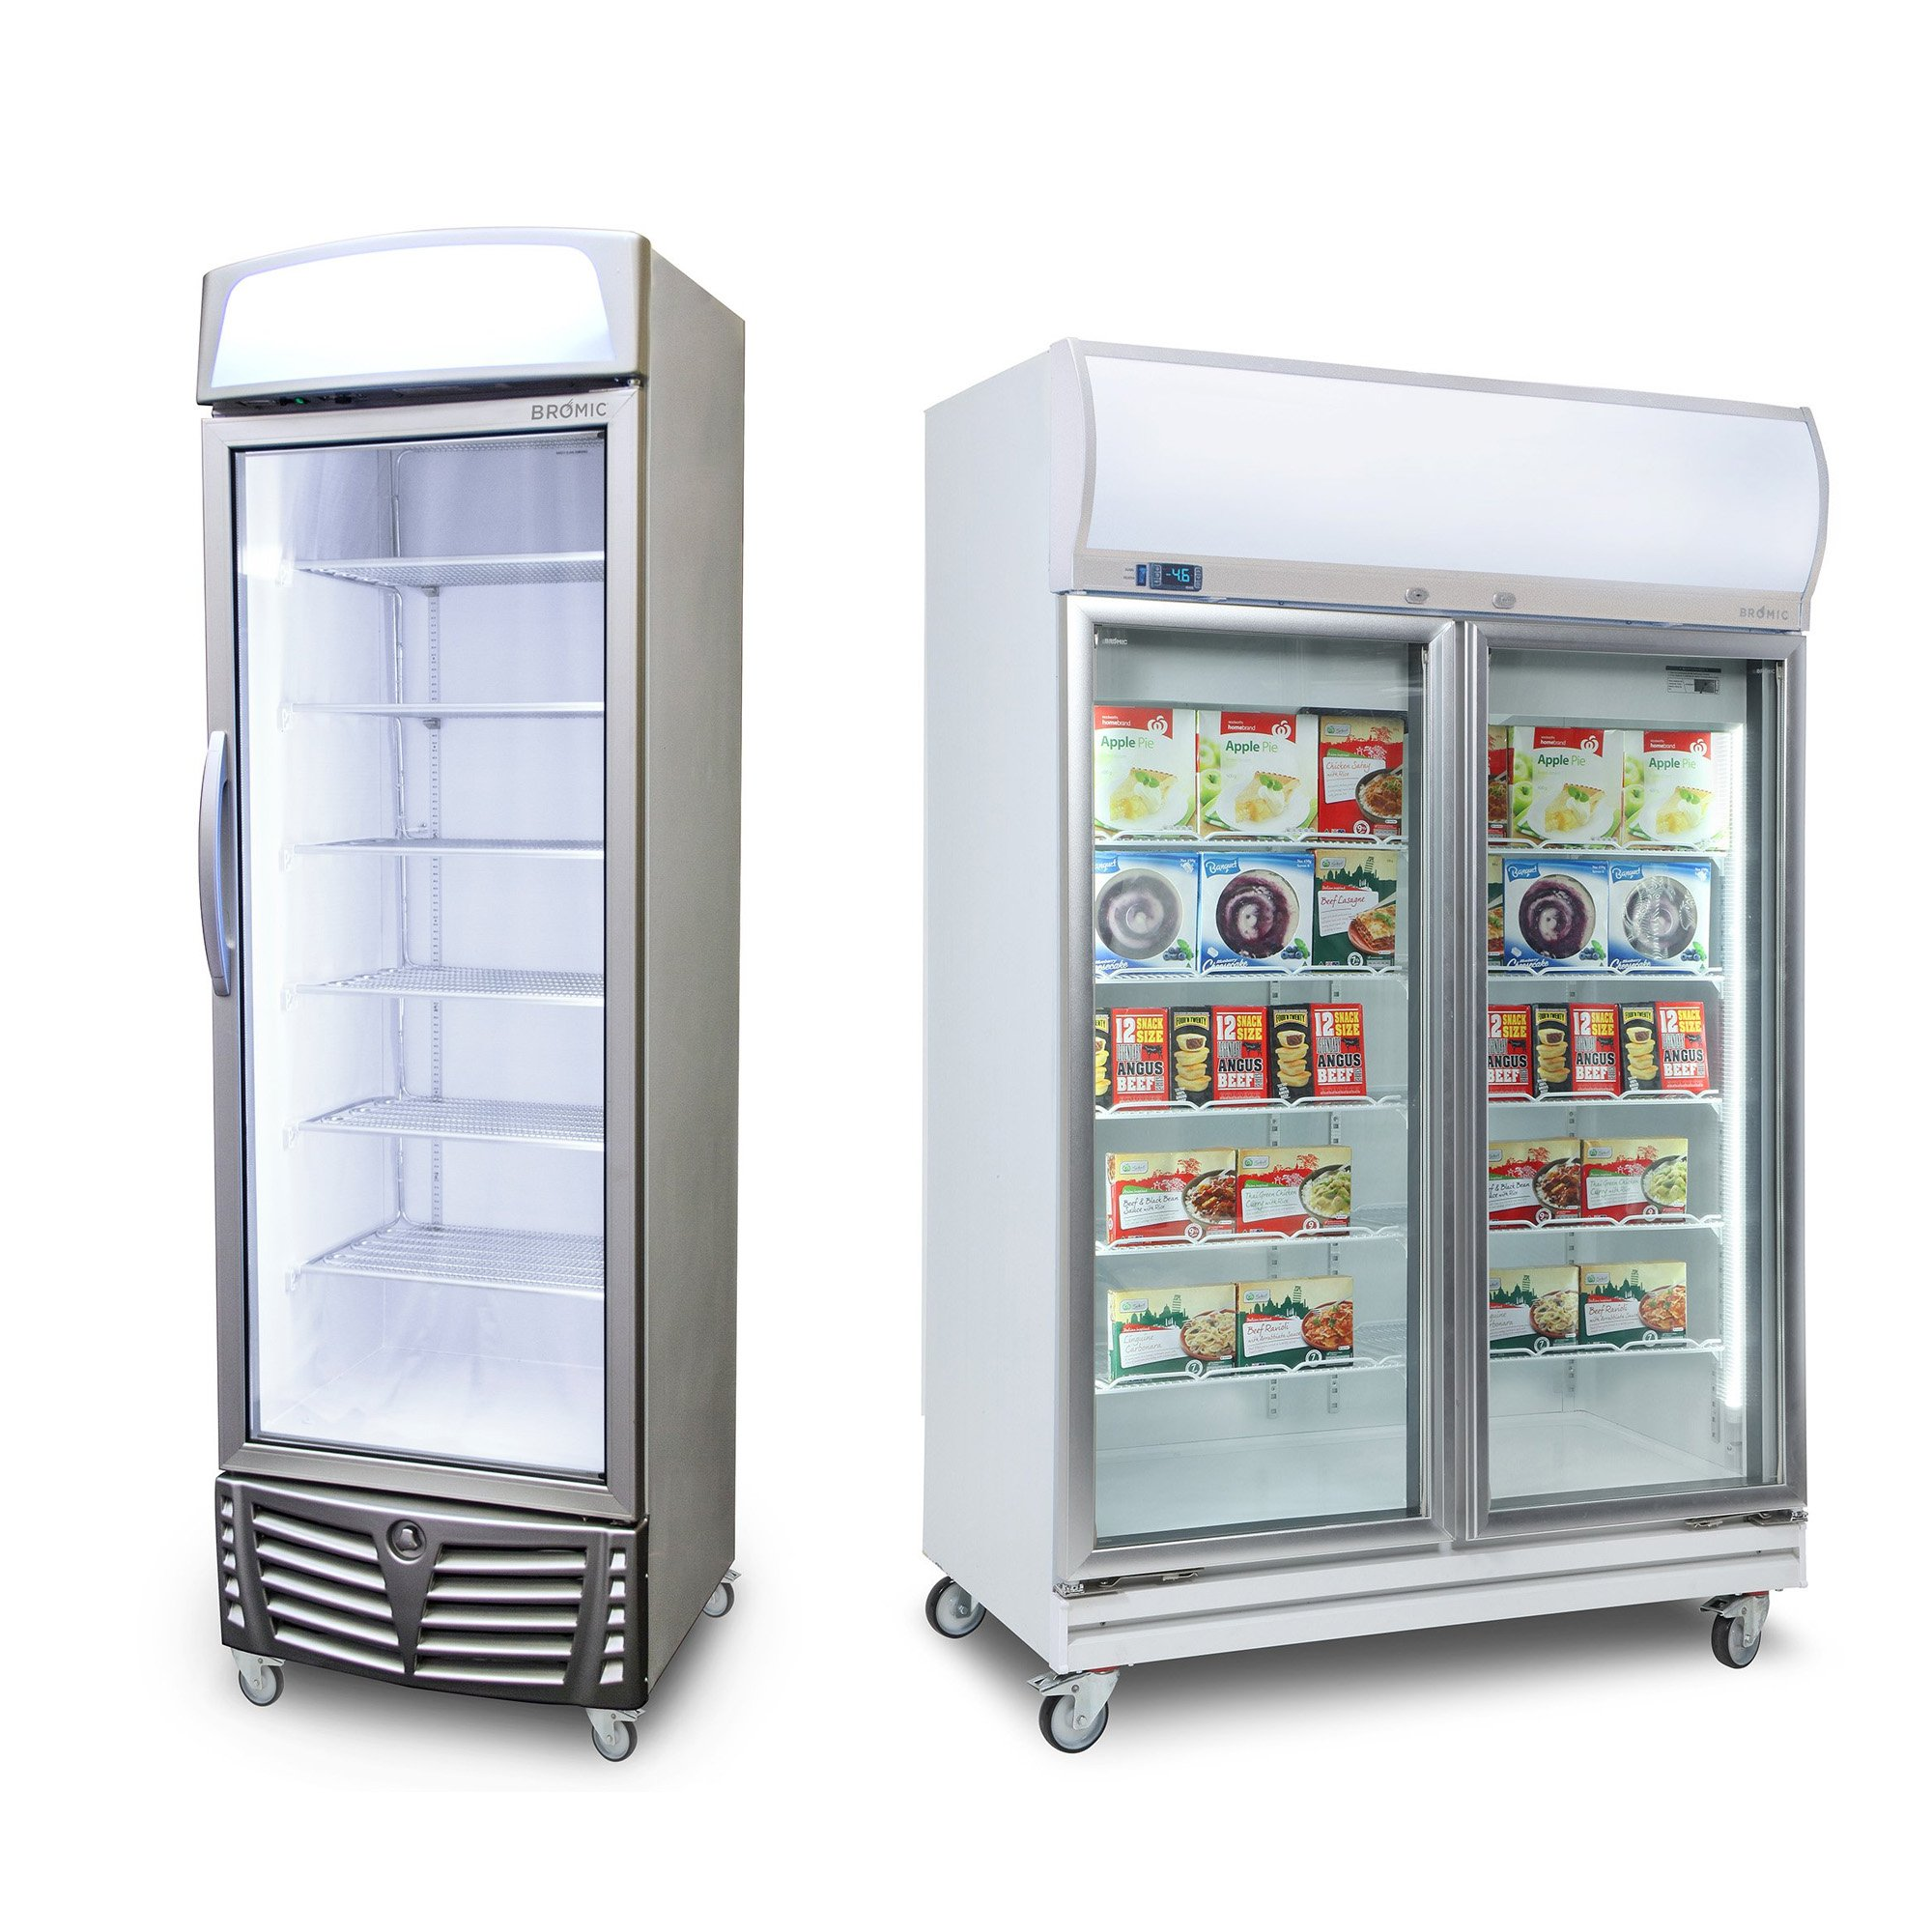 VERTICAL DISPLAY STORAGE UPRIGHT FREEZERS